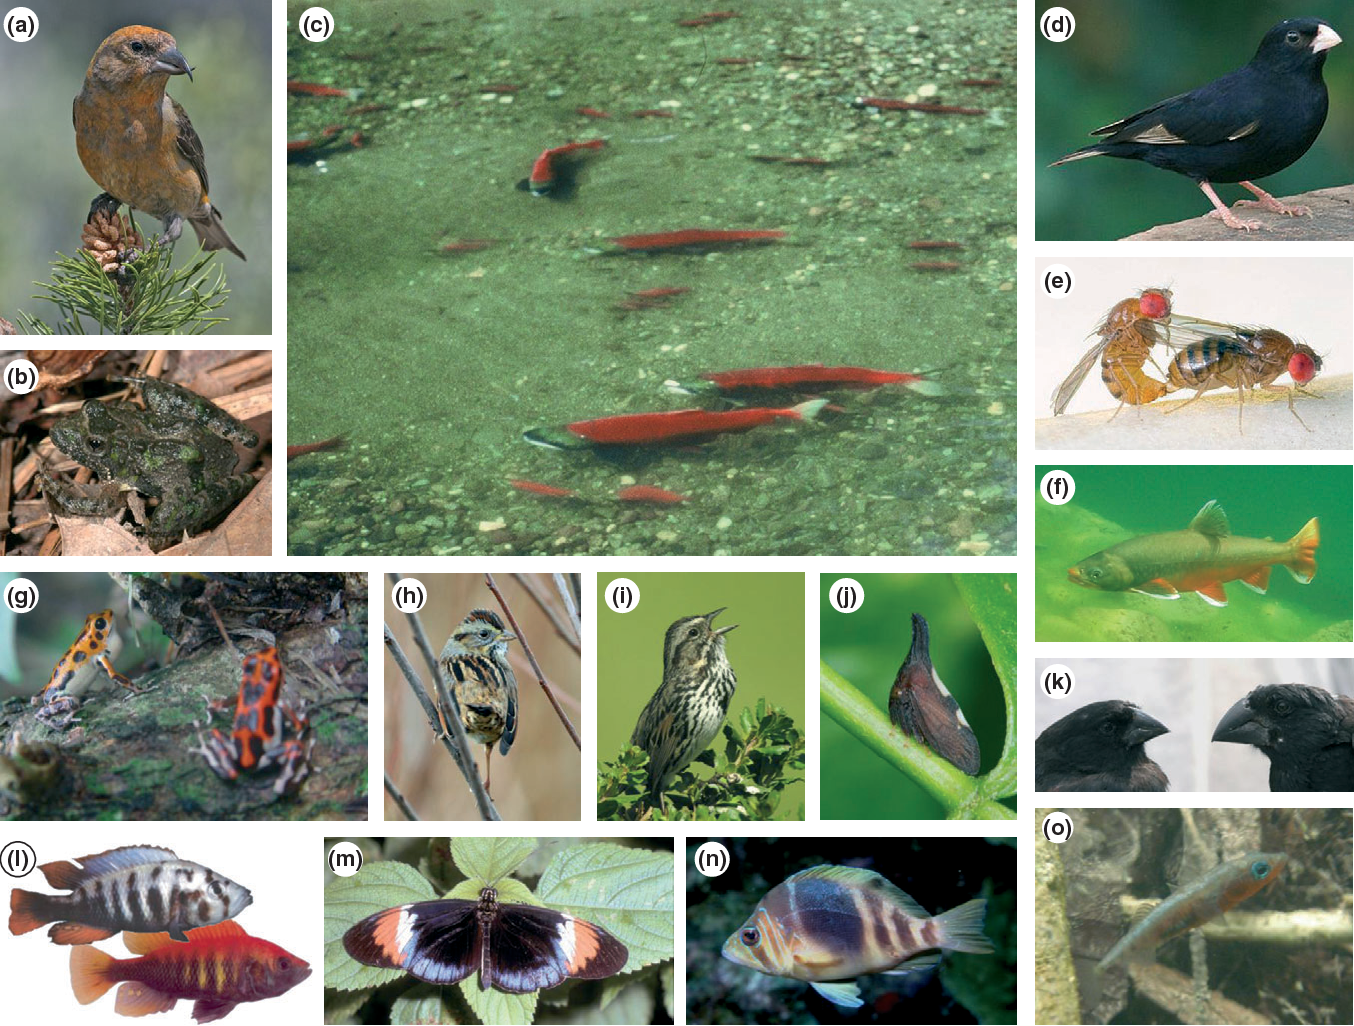 Ecology sexual selection and speciation